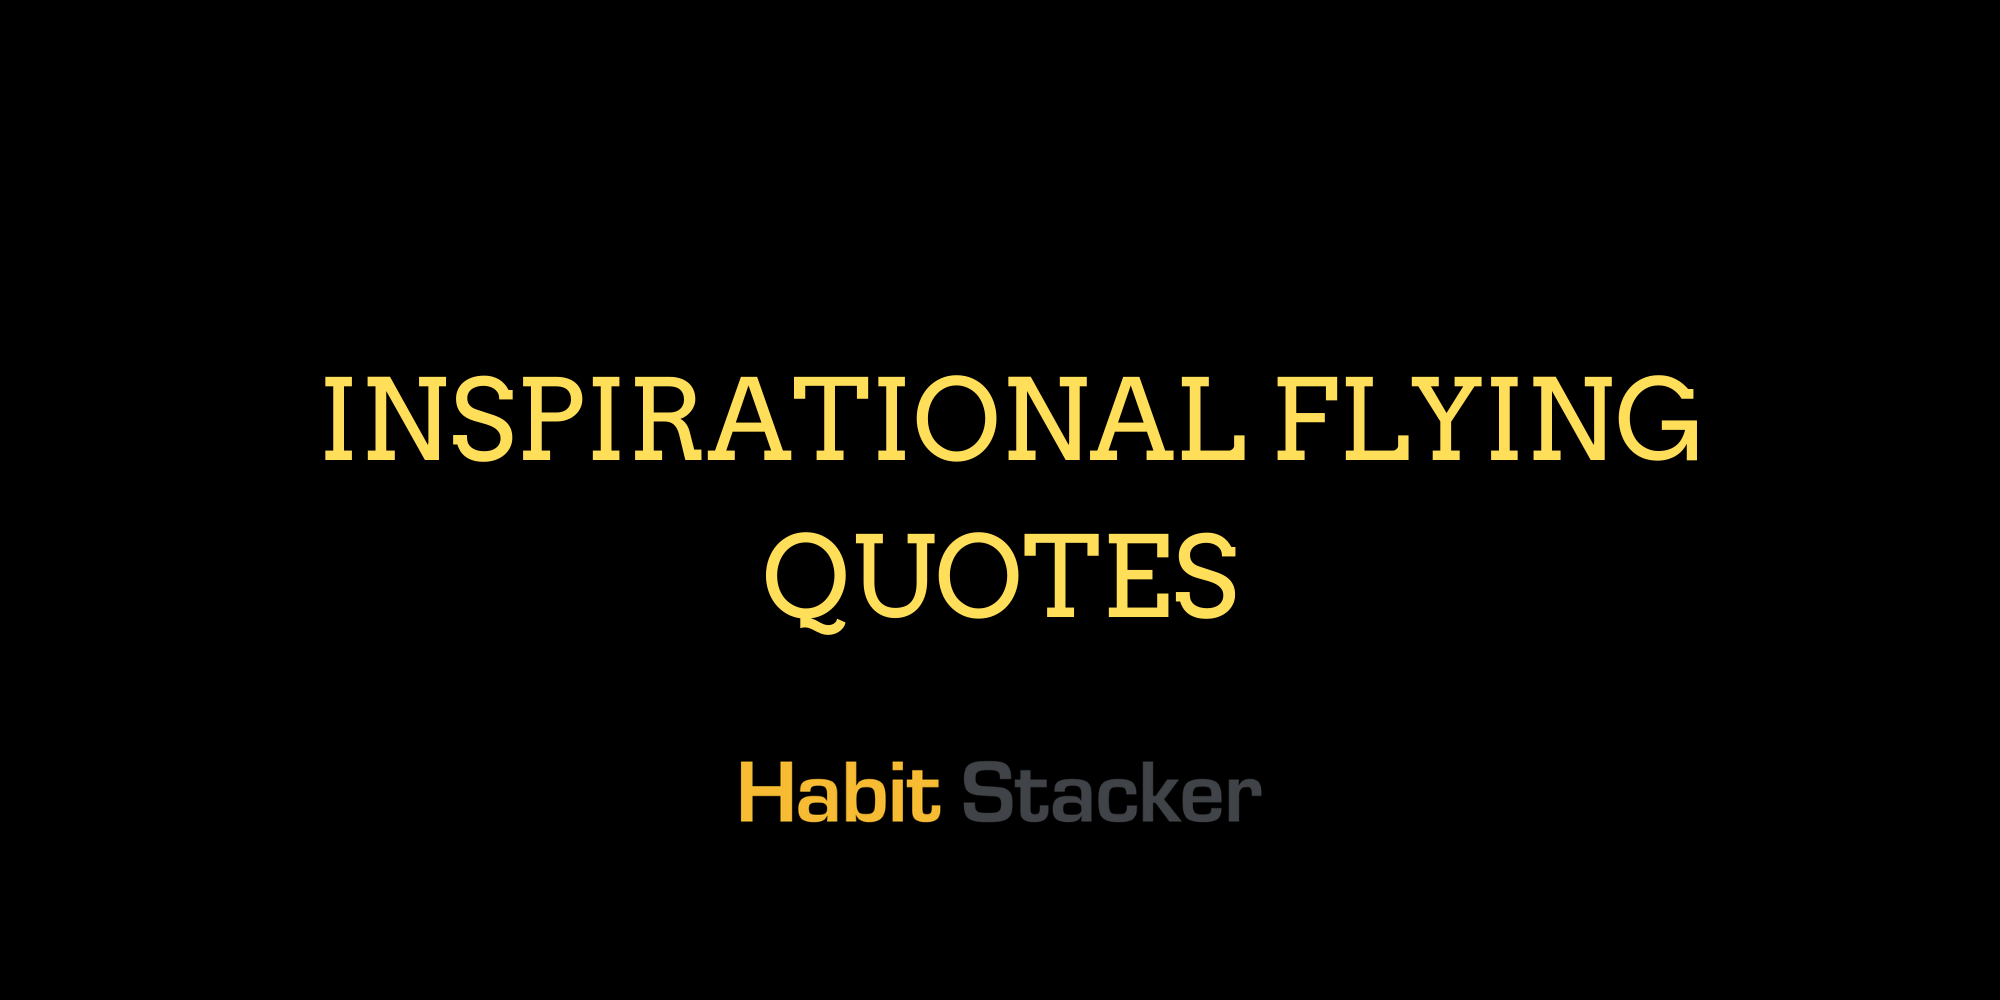 Inspirational Flying Quotes